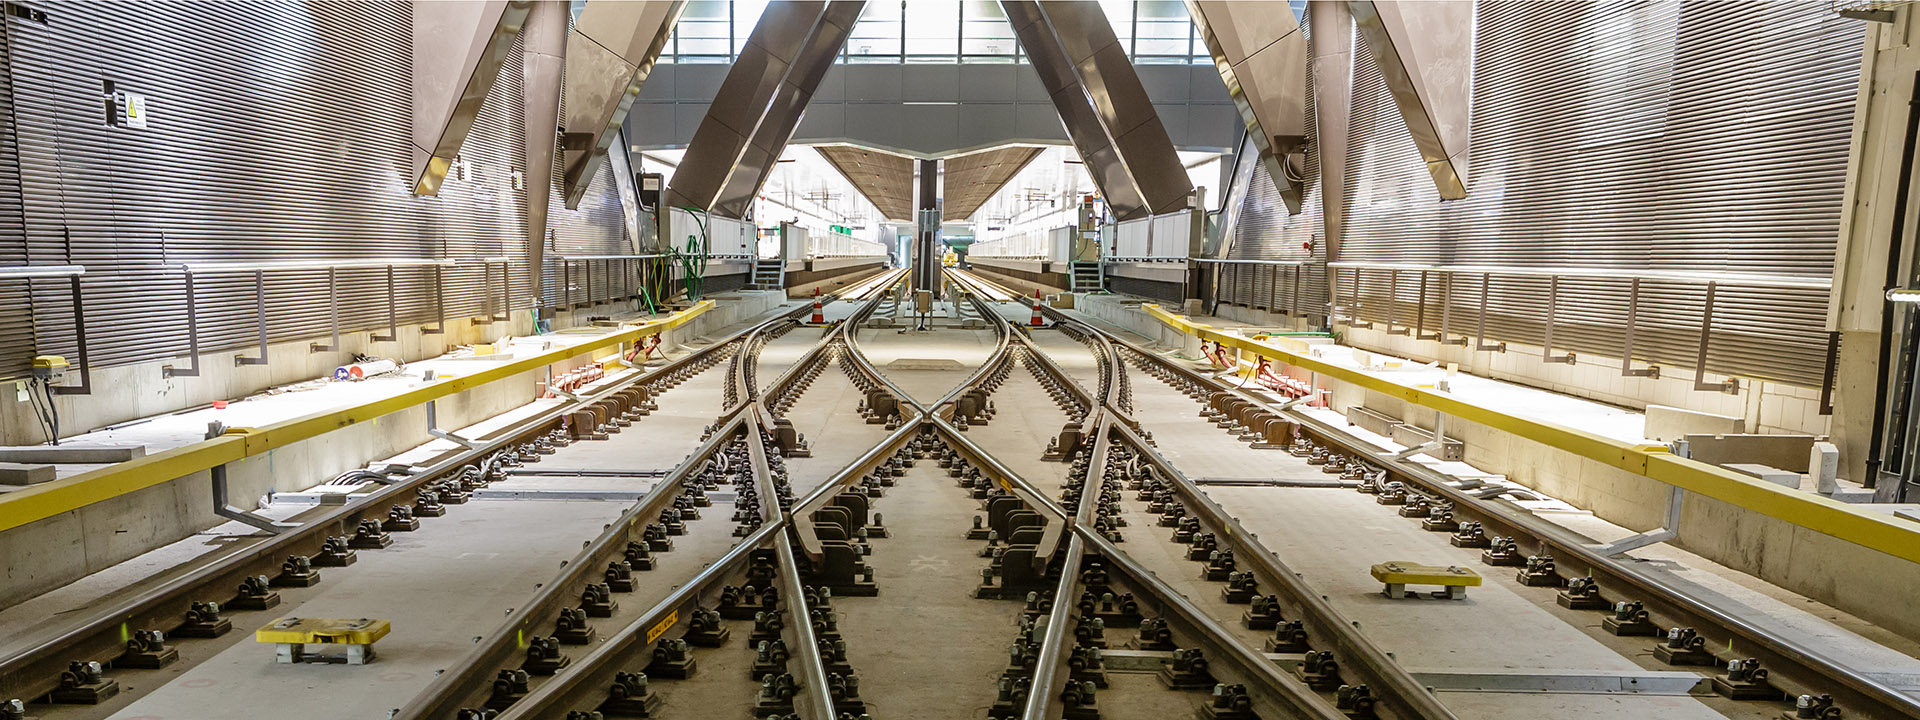 Ricardo expertise helps bring Amsterdam's new metro into service